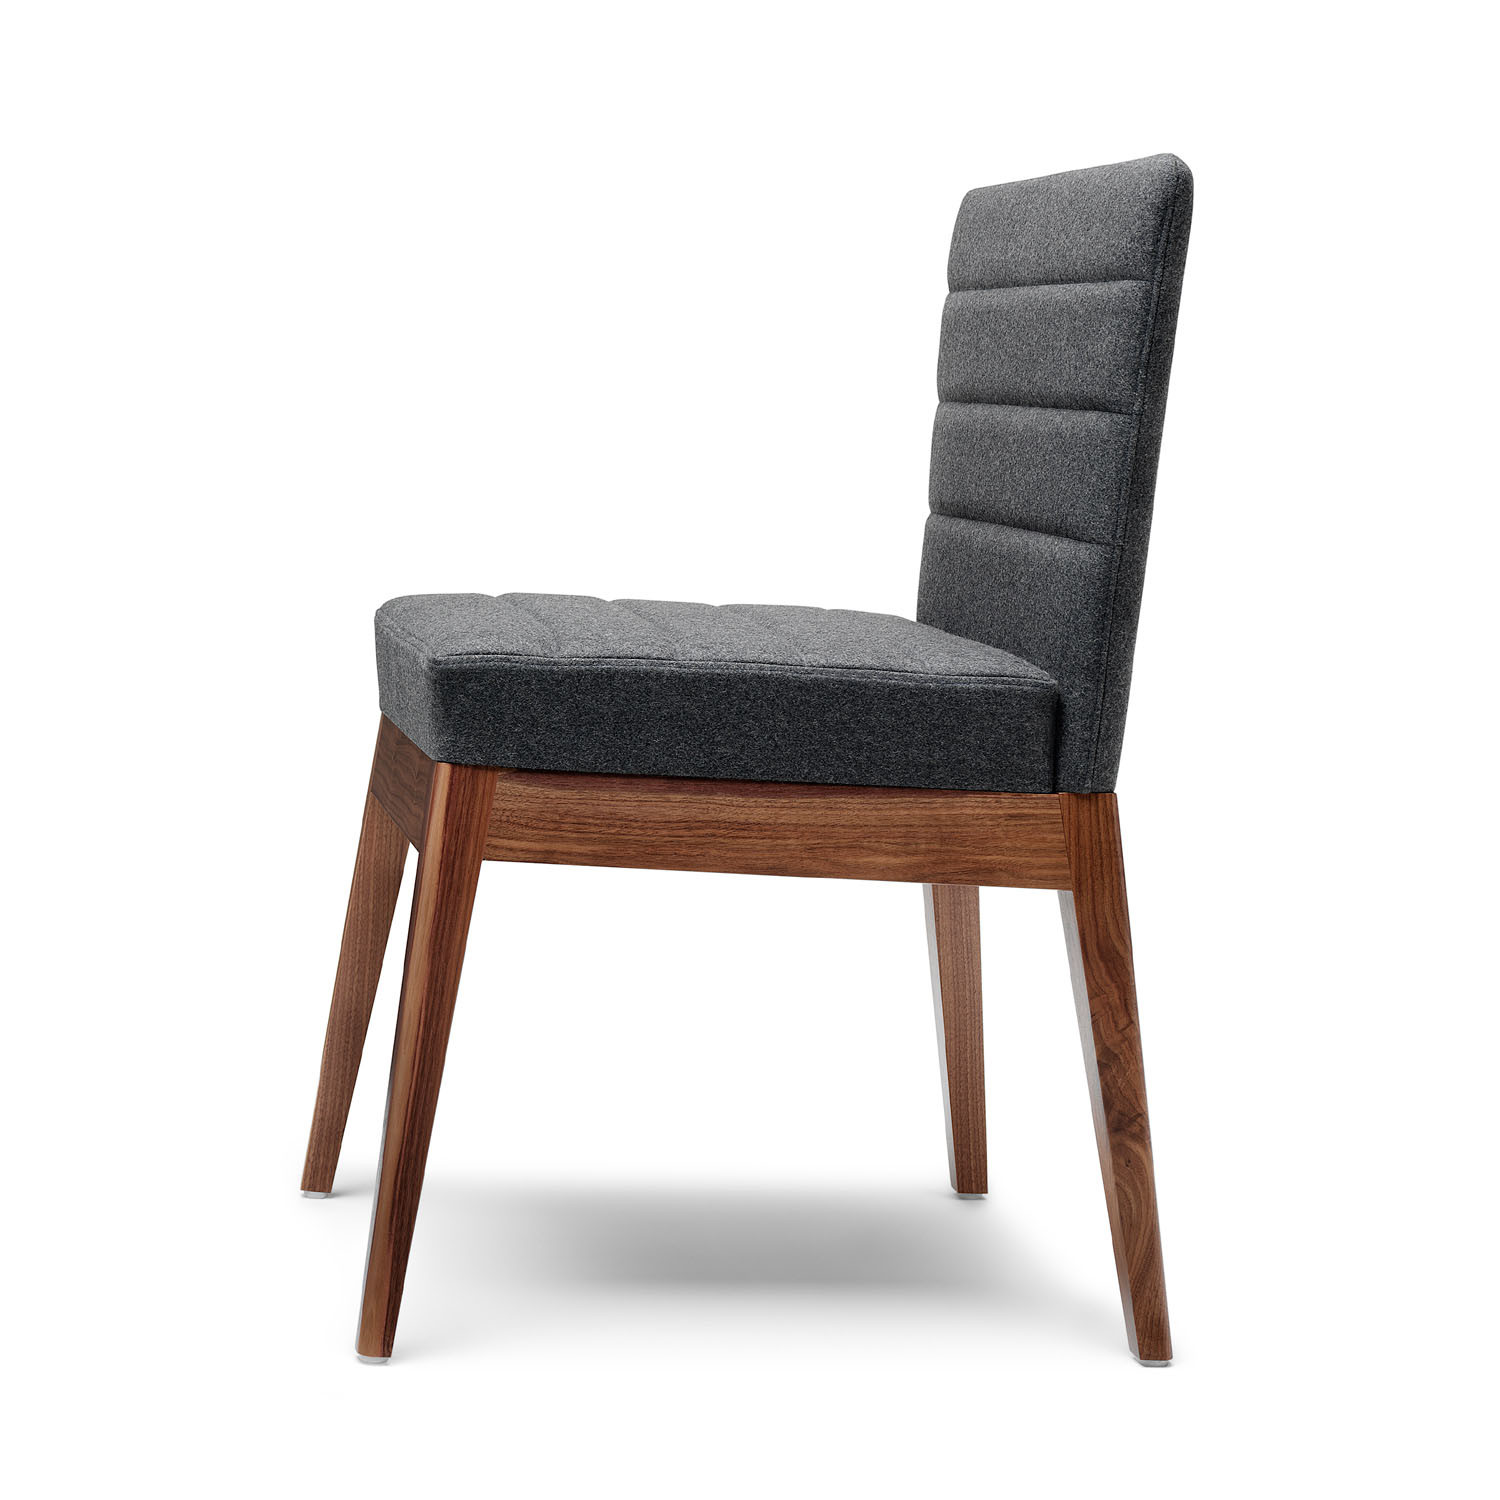 Callisto Dining Chair from Lyndon Design